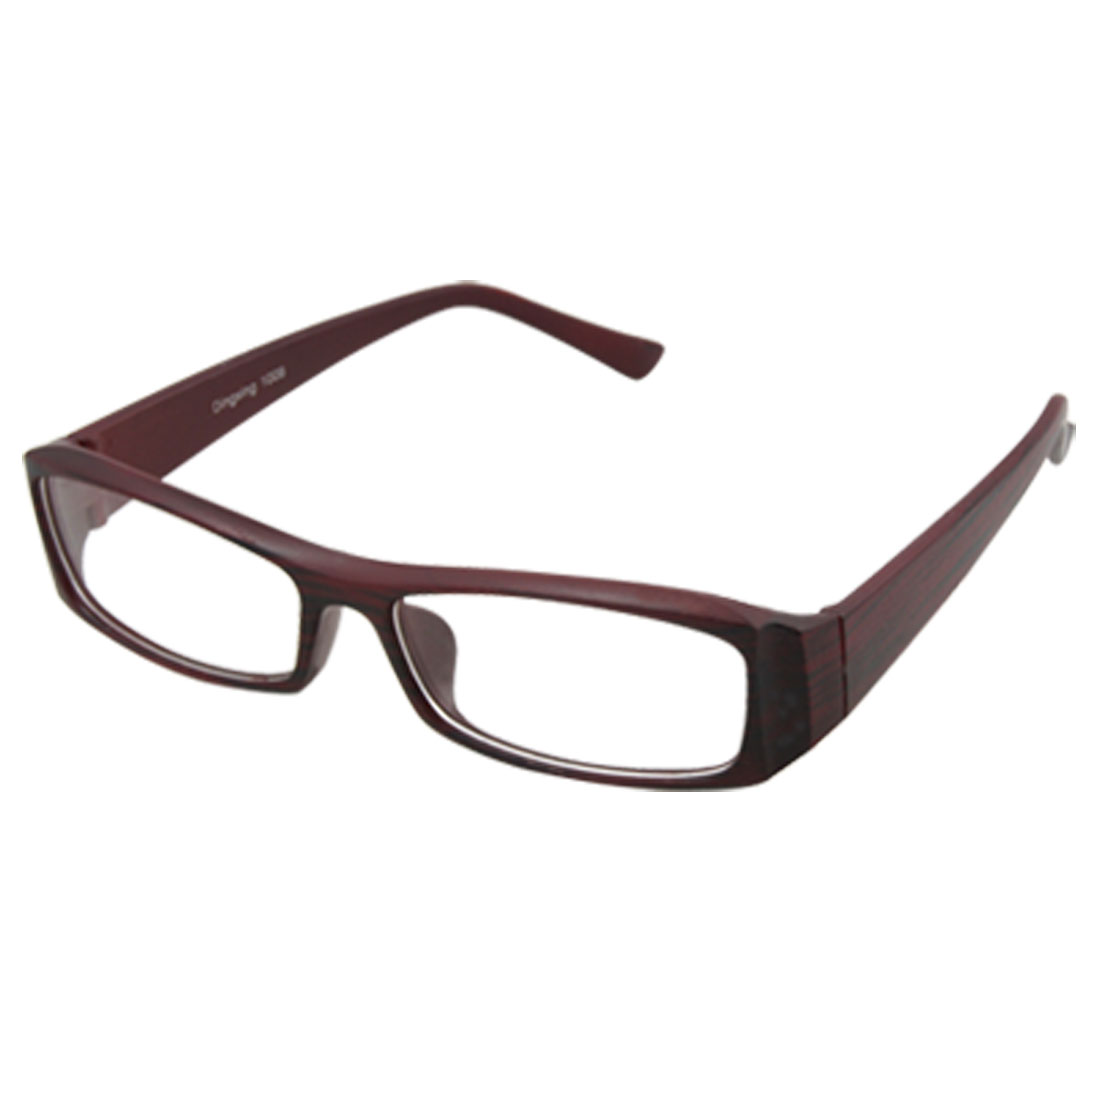 Unisex Brown Wood Grain Style Plastic Frame Clear Lens Glasses